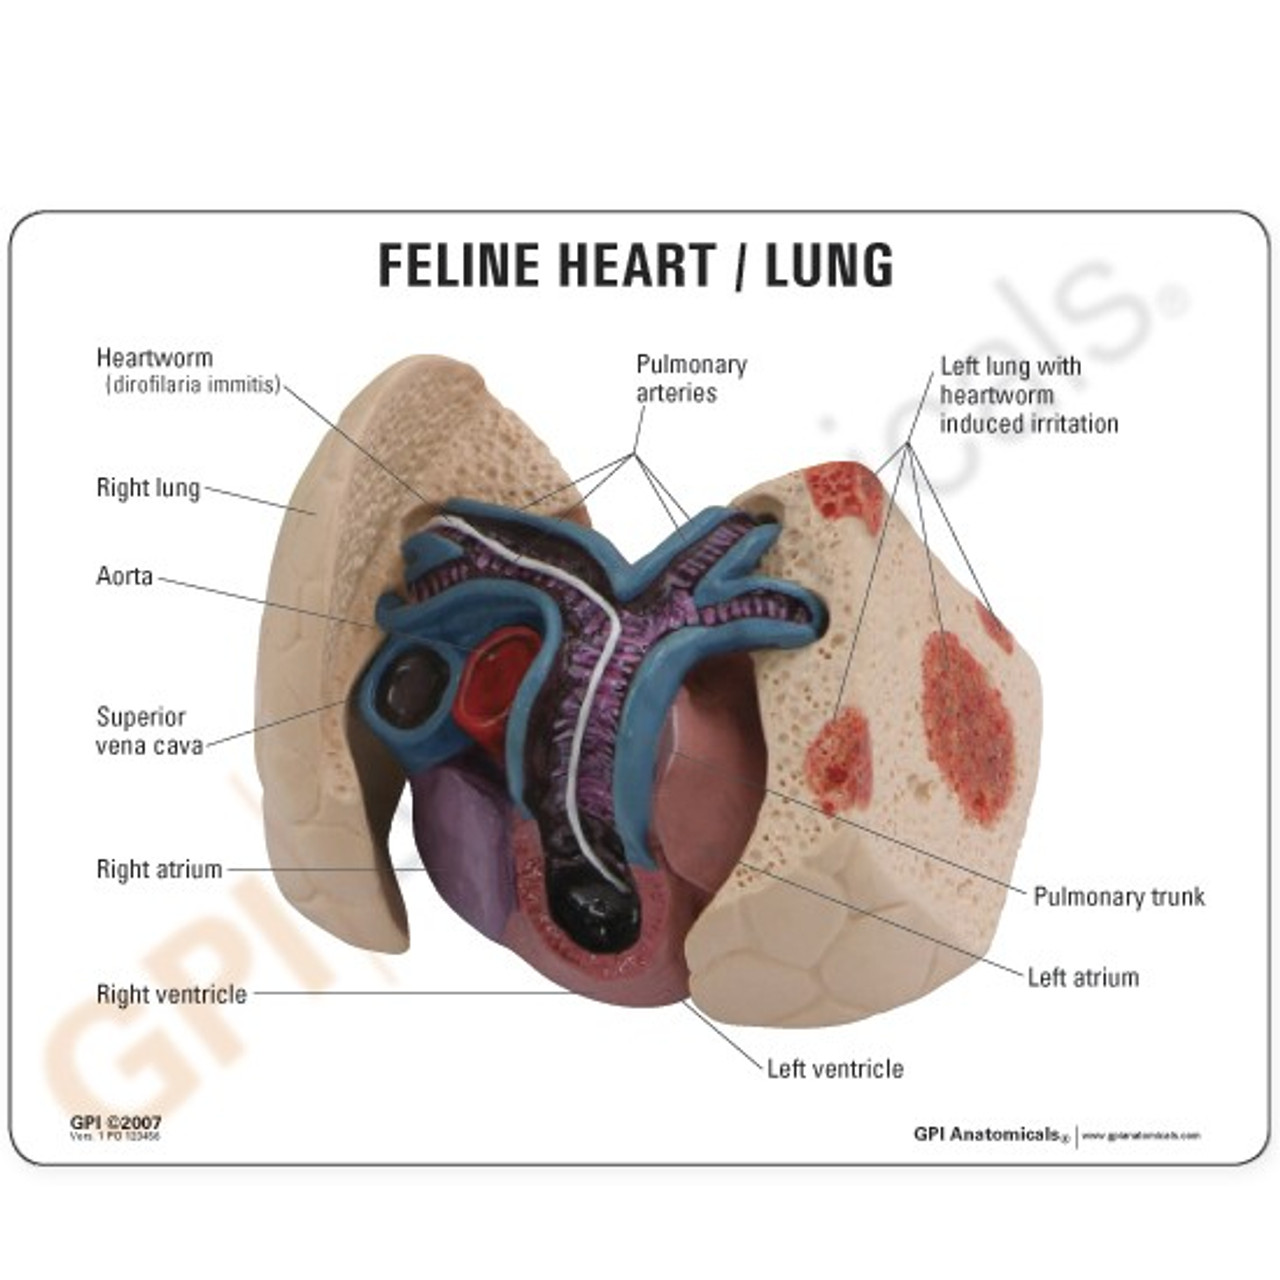 Feline Heart / Lung Model Description Card